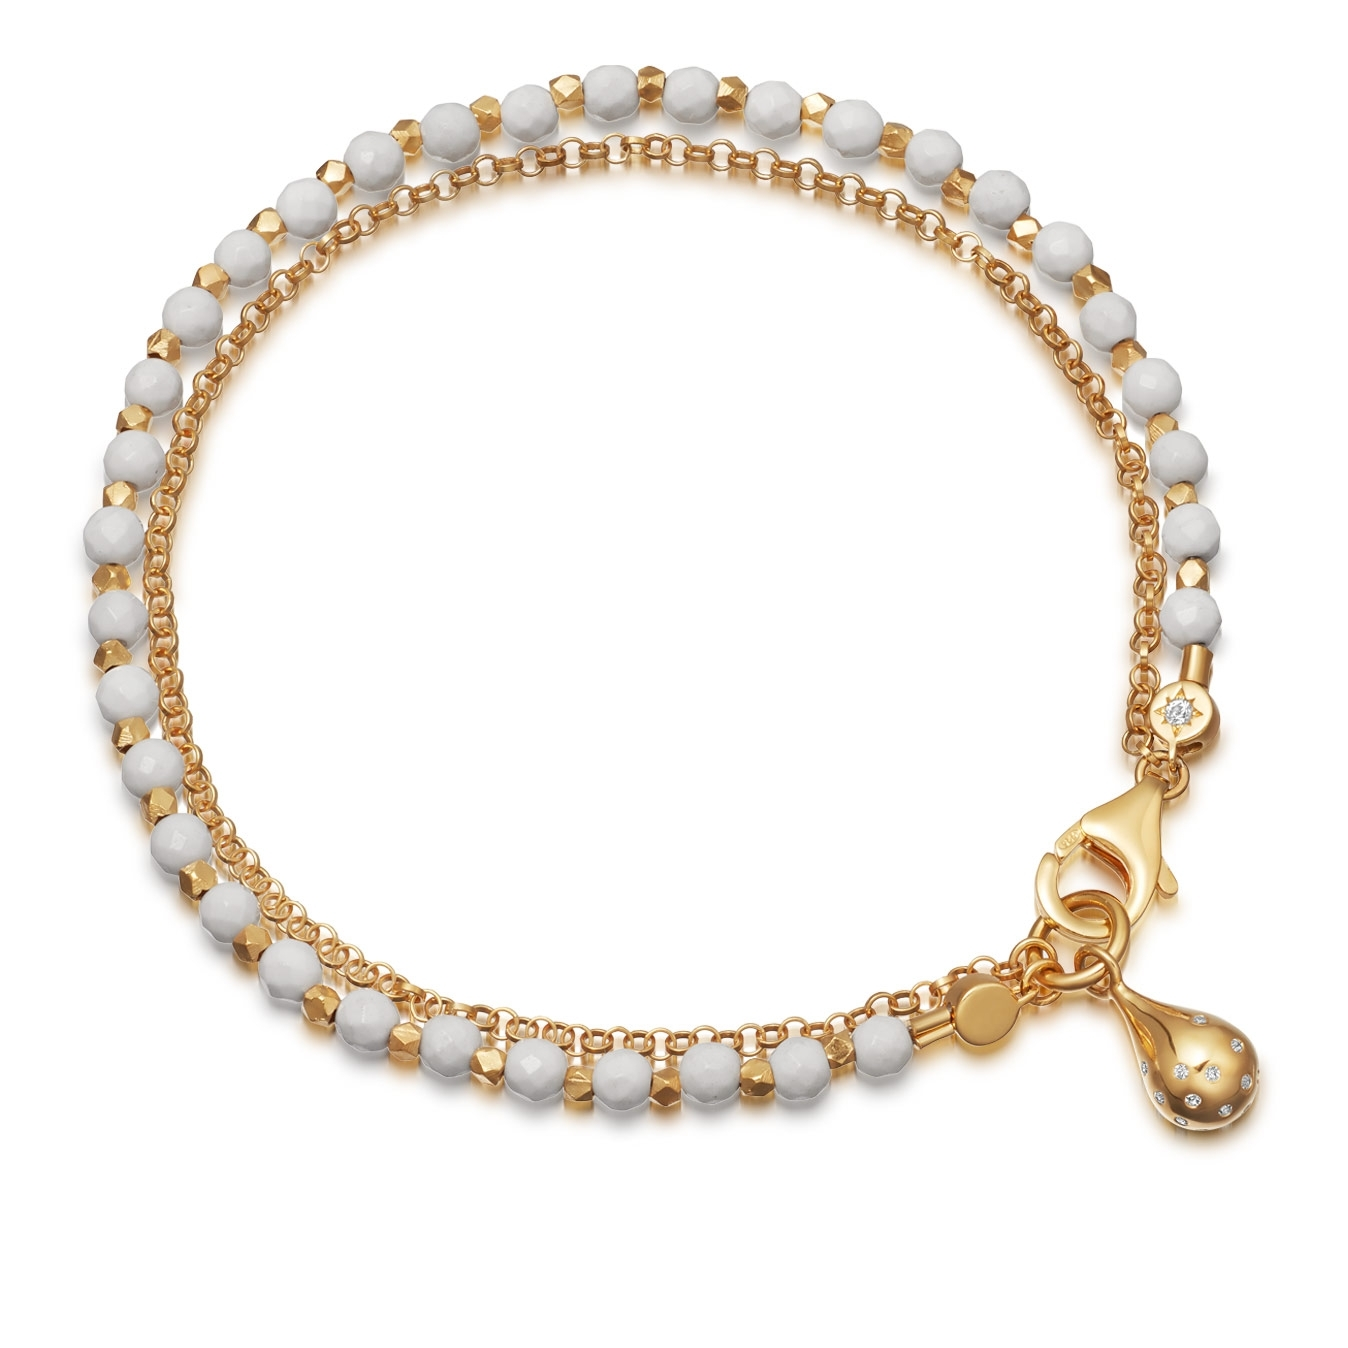 White Agate Dew Drop Biography Bracelet